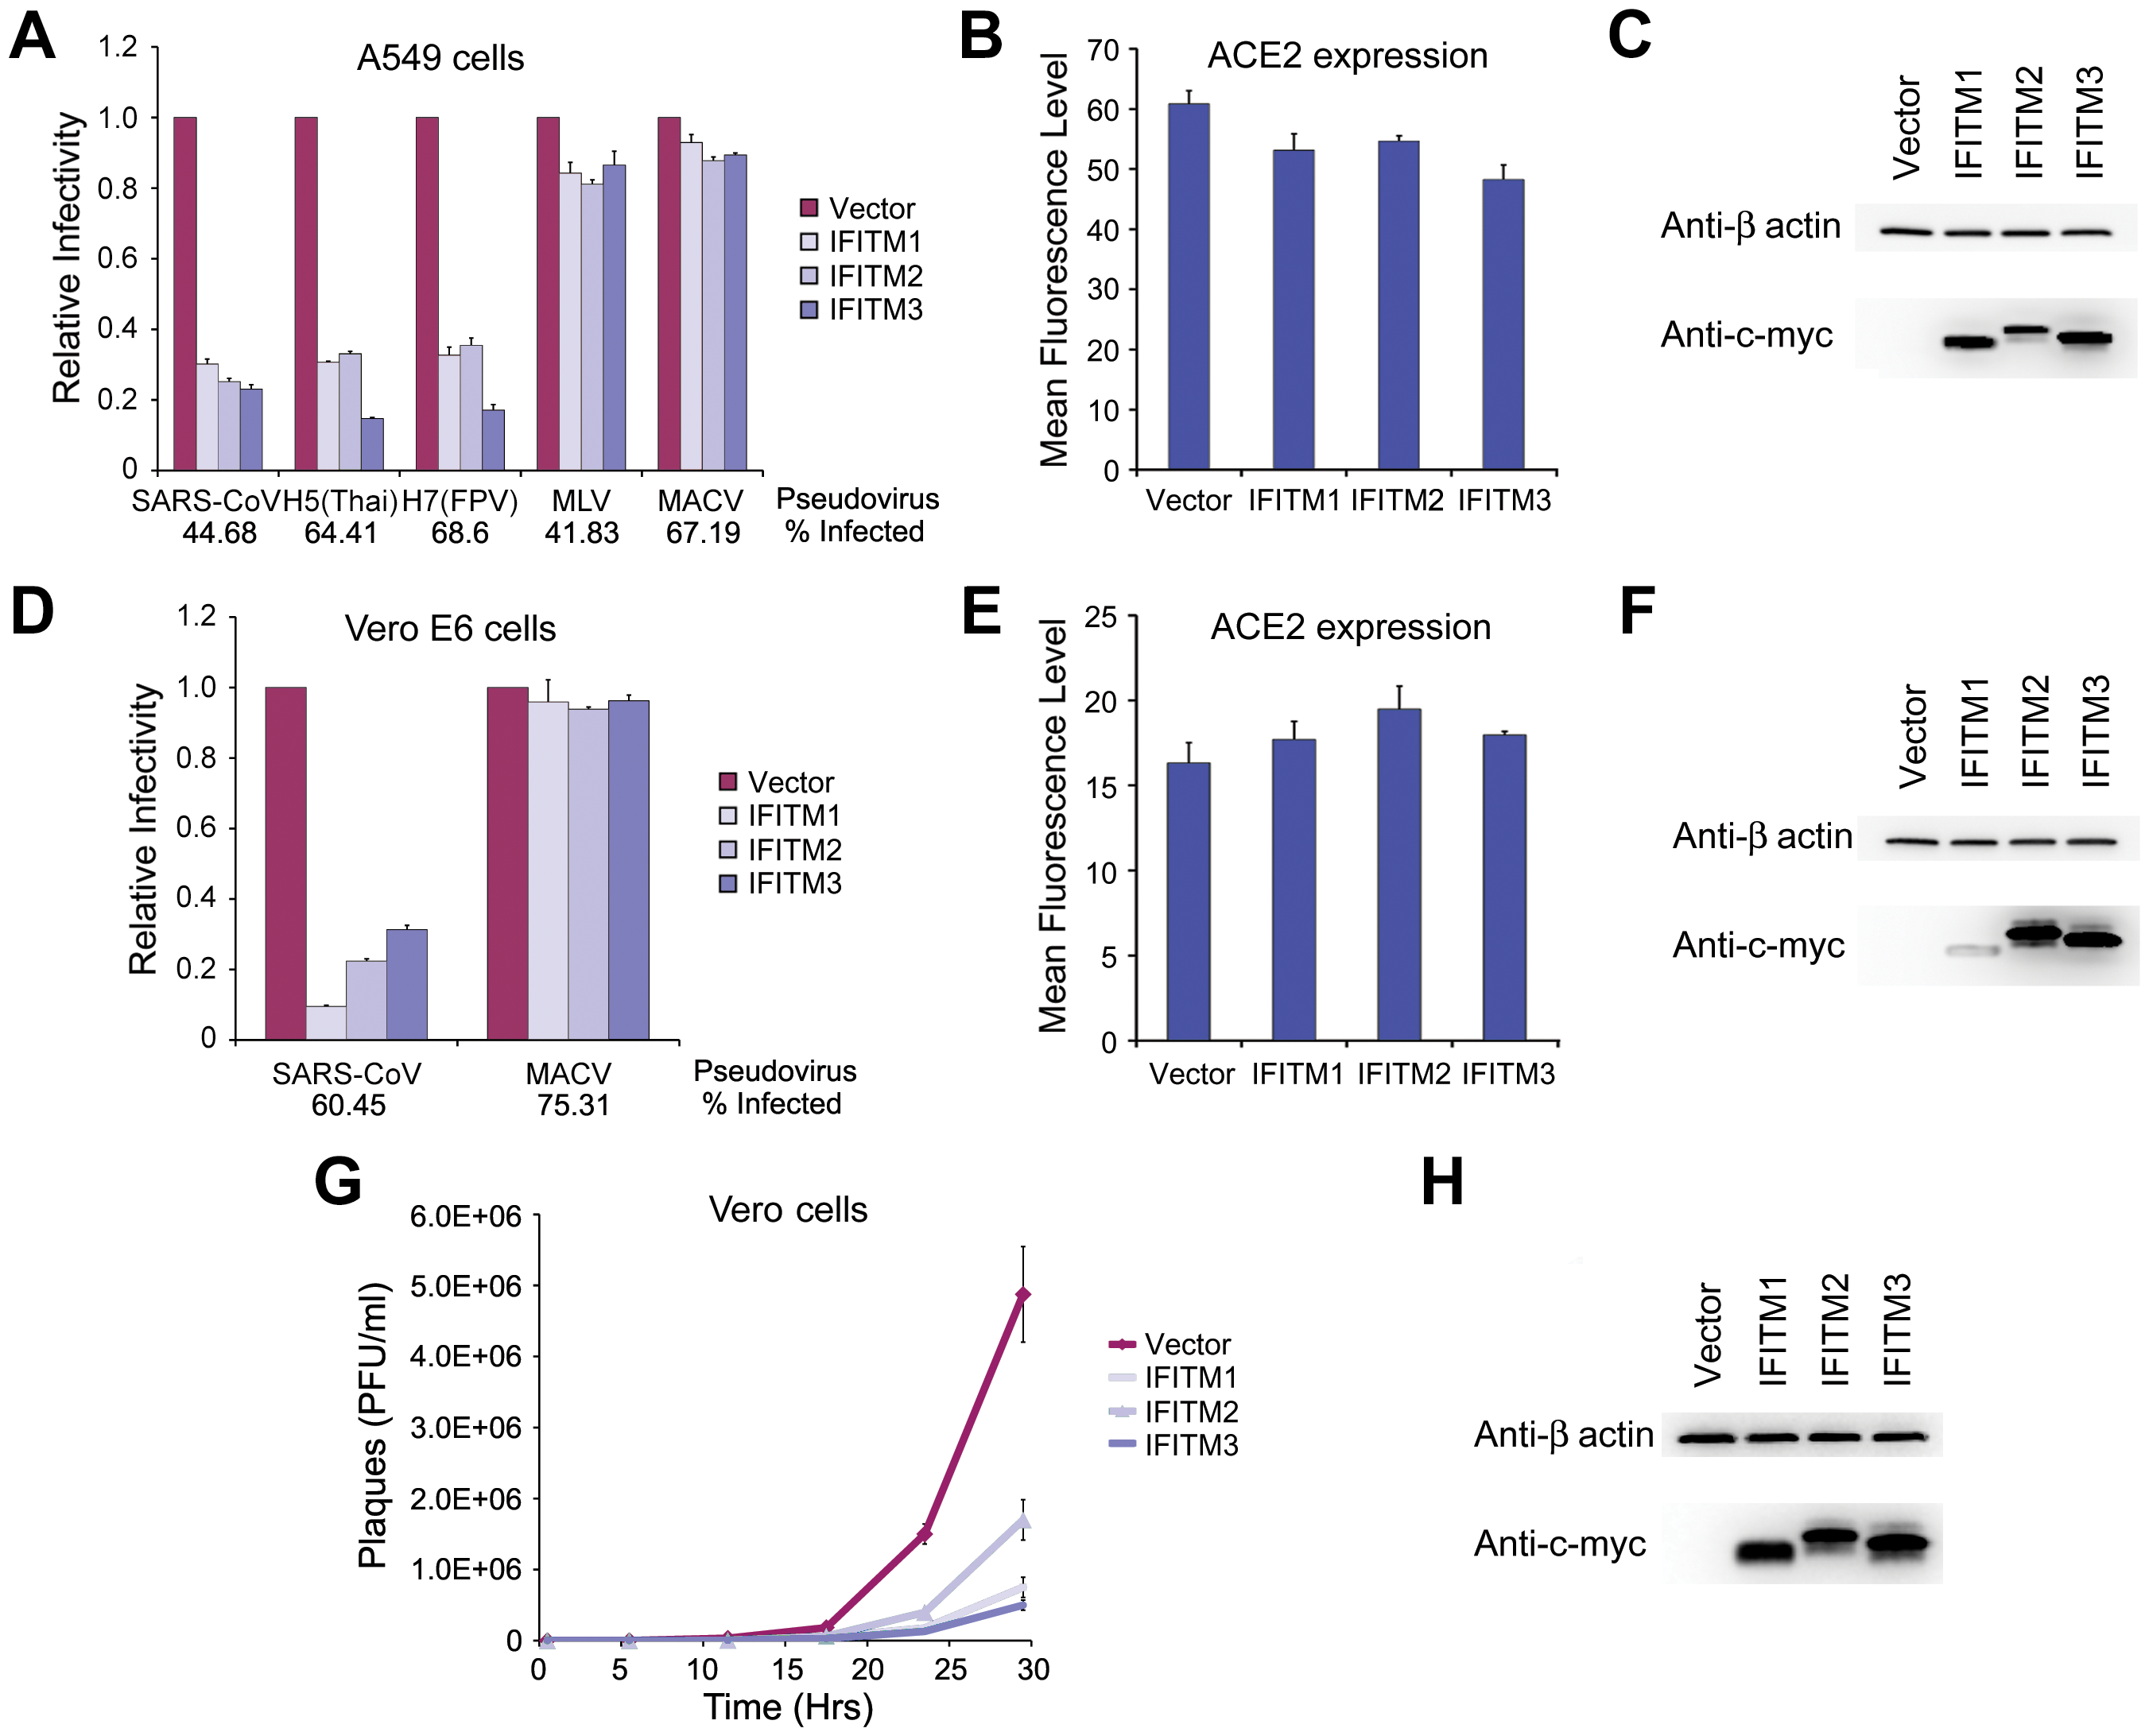 SARS-CoV S infection is restricted by IFITM1, 2, and 3.